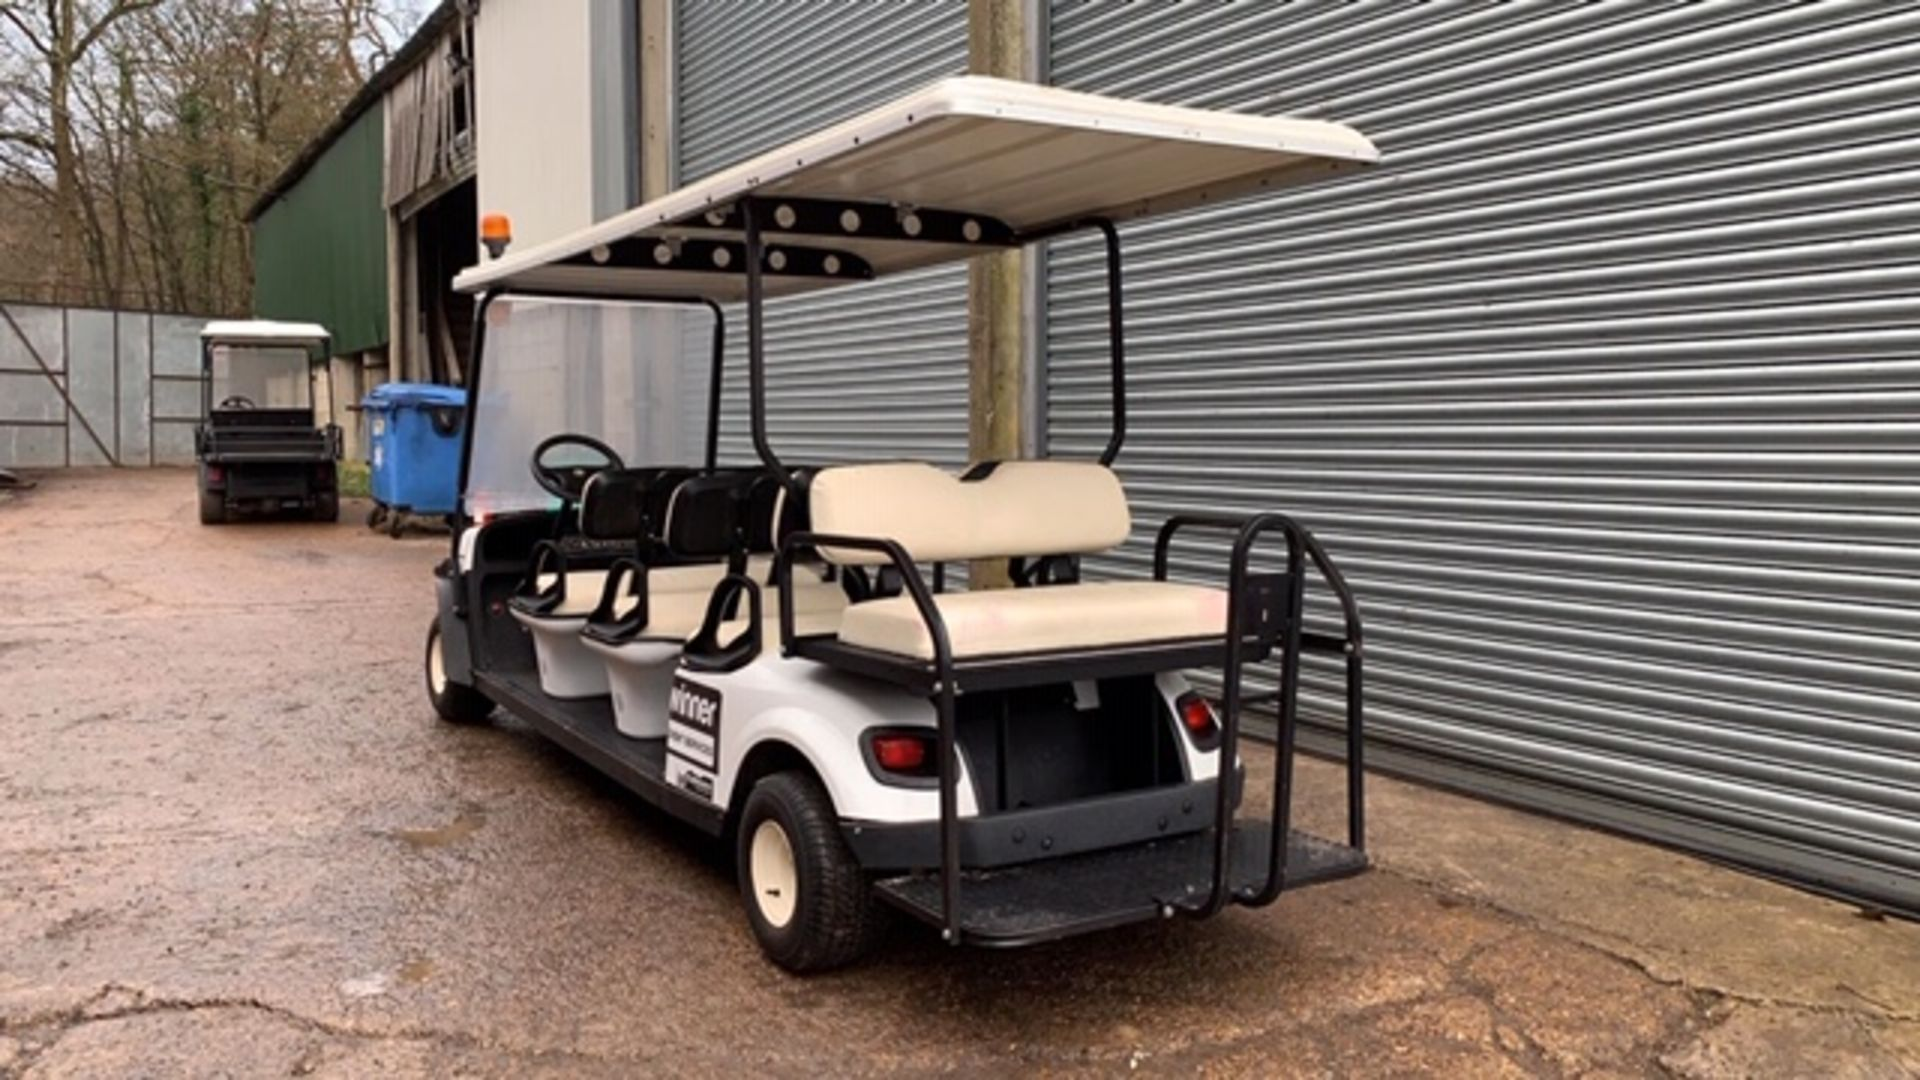 Lot 3 - CUSHMAN EZGO SHUTTLE 8 PETROL ENGINED 8 SEATER GOLF / EVENTS BUGGY. YEAR 2017 BUILD. DIRECT FROM